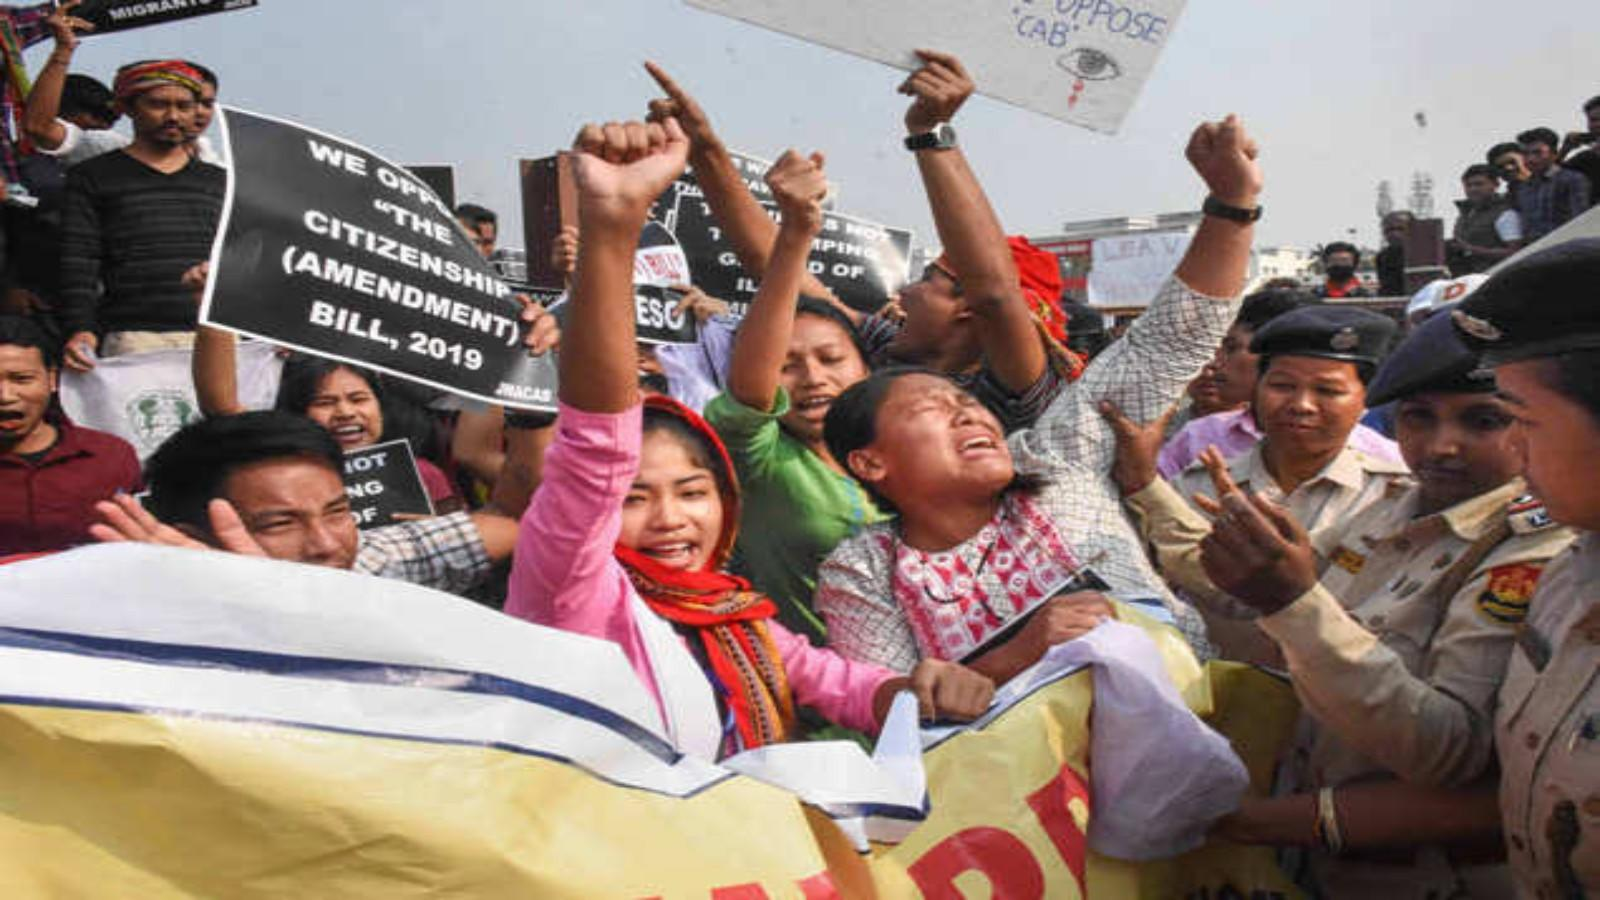 nagaland-shuts-down-in-protest-of-citizenship-amendment-act